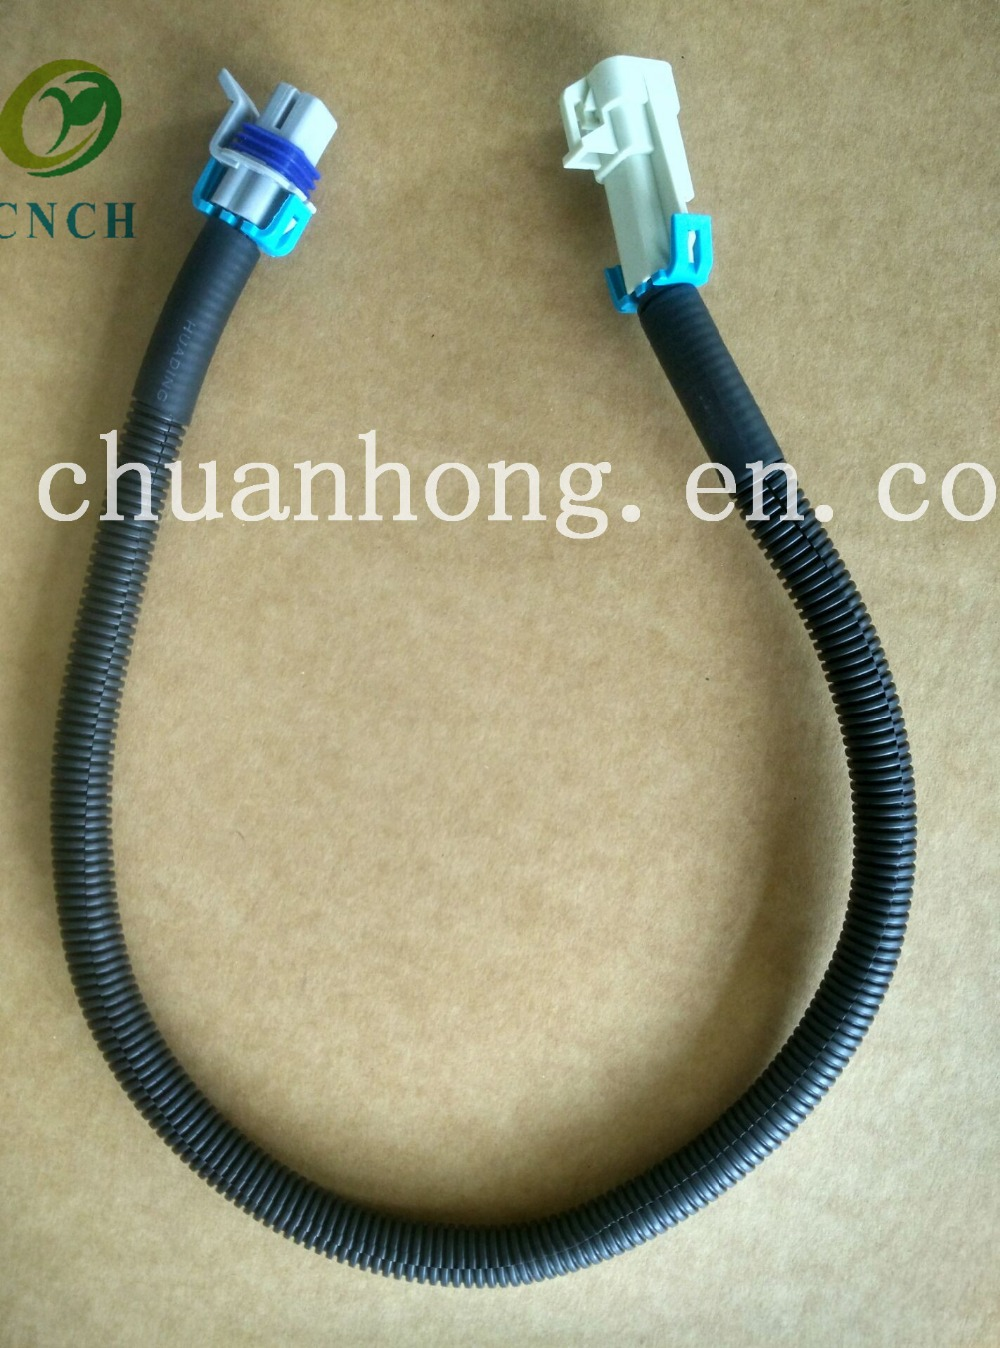 medium resolution of cnch 4 pin pigtail for gentex 313 453 homelink or hl compass mirror wiring harness